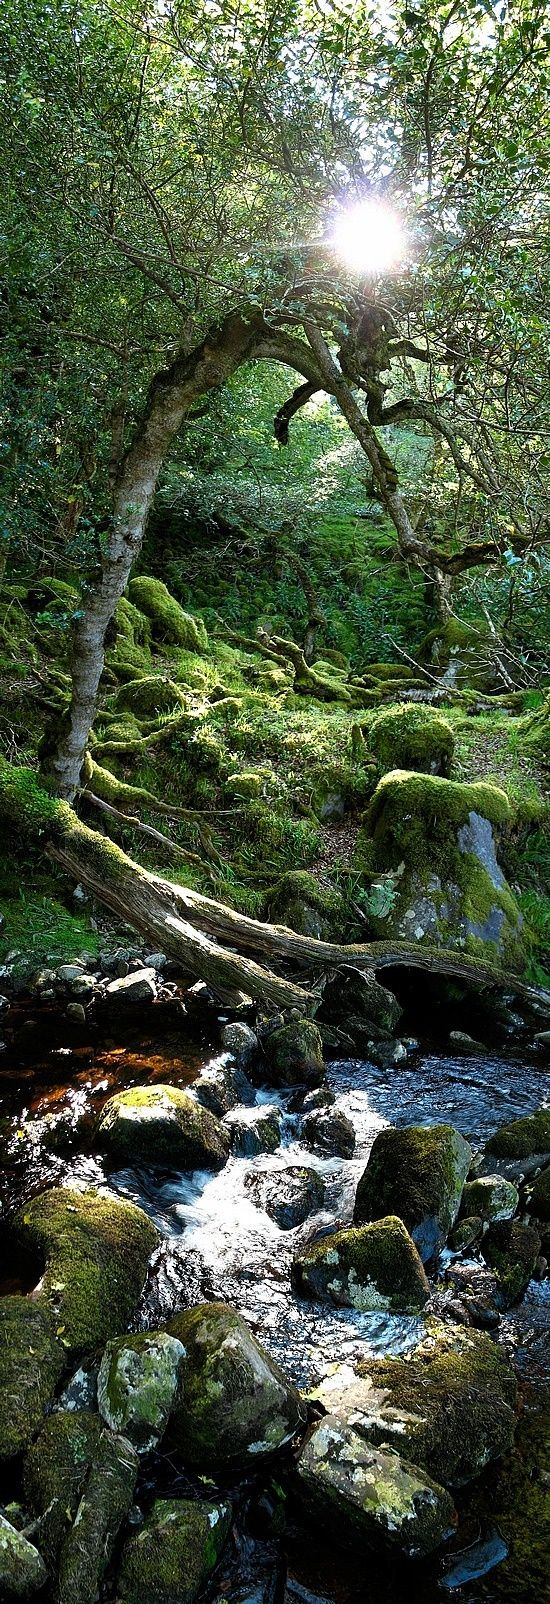 The trees and the babbling brook exchange ancient stories of the forgotten forest. Ireland